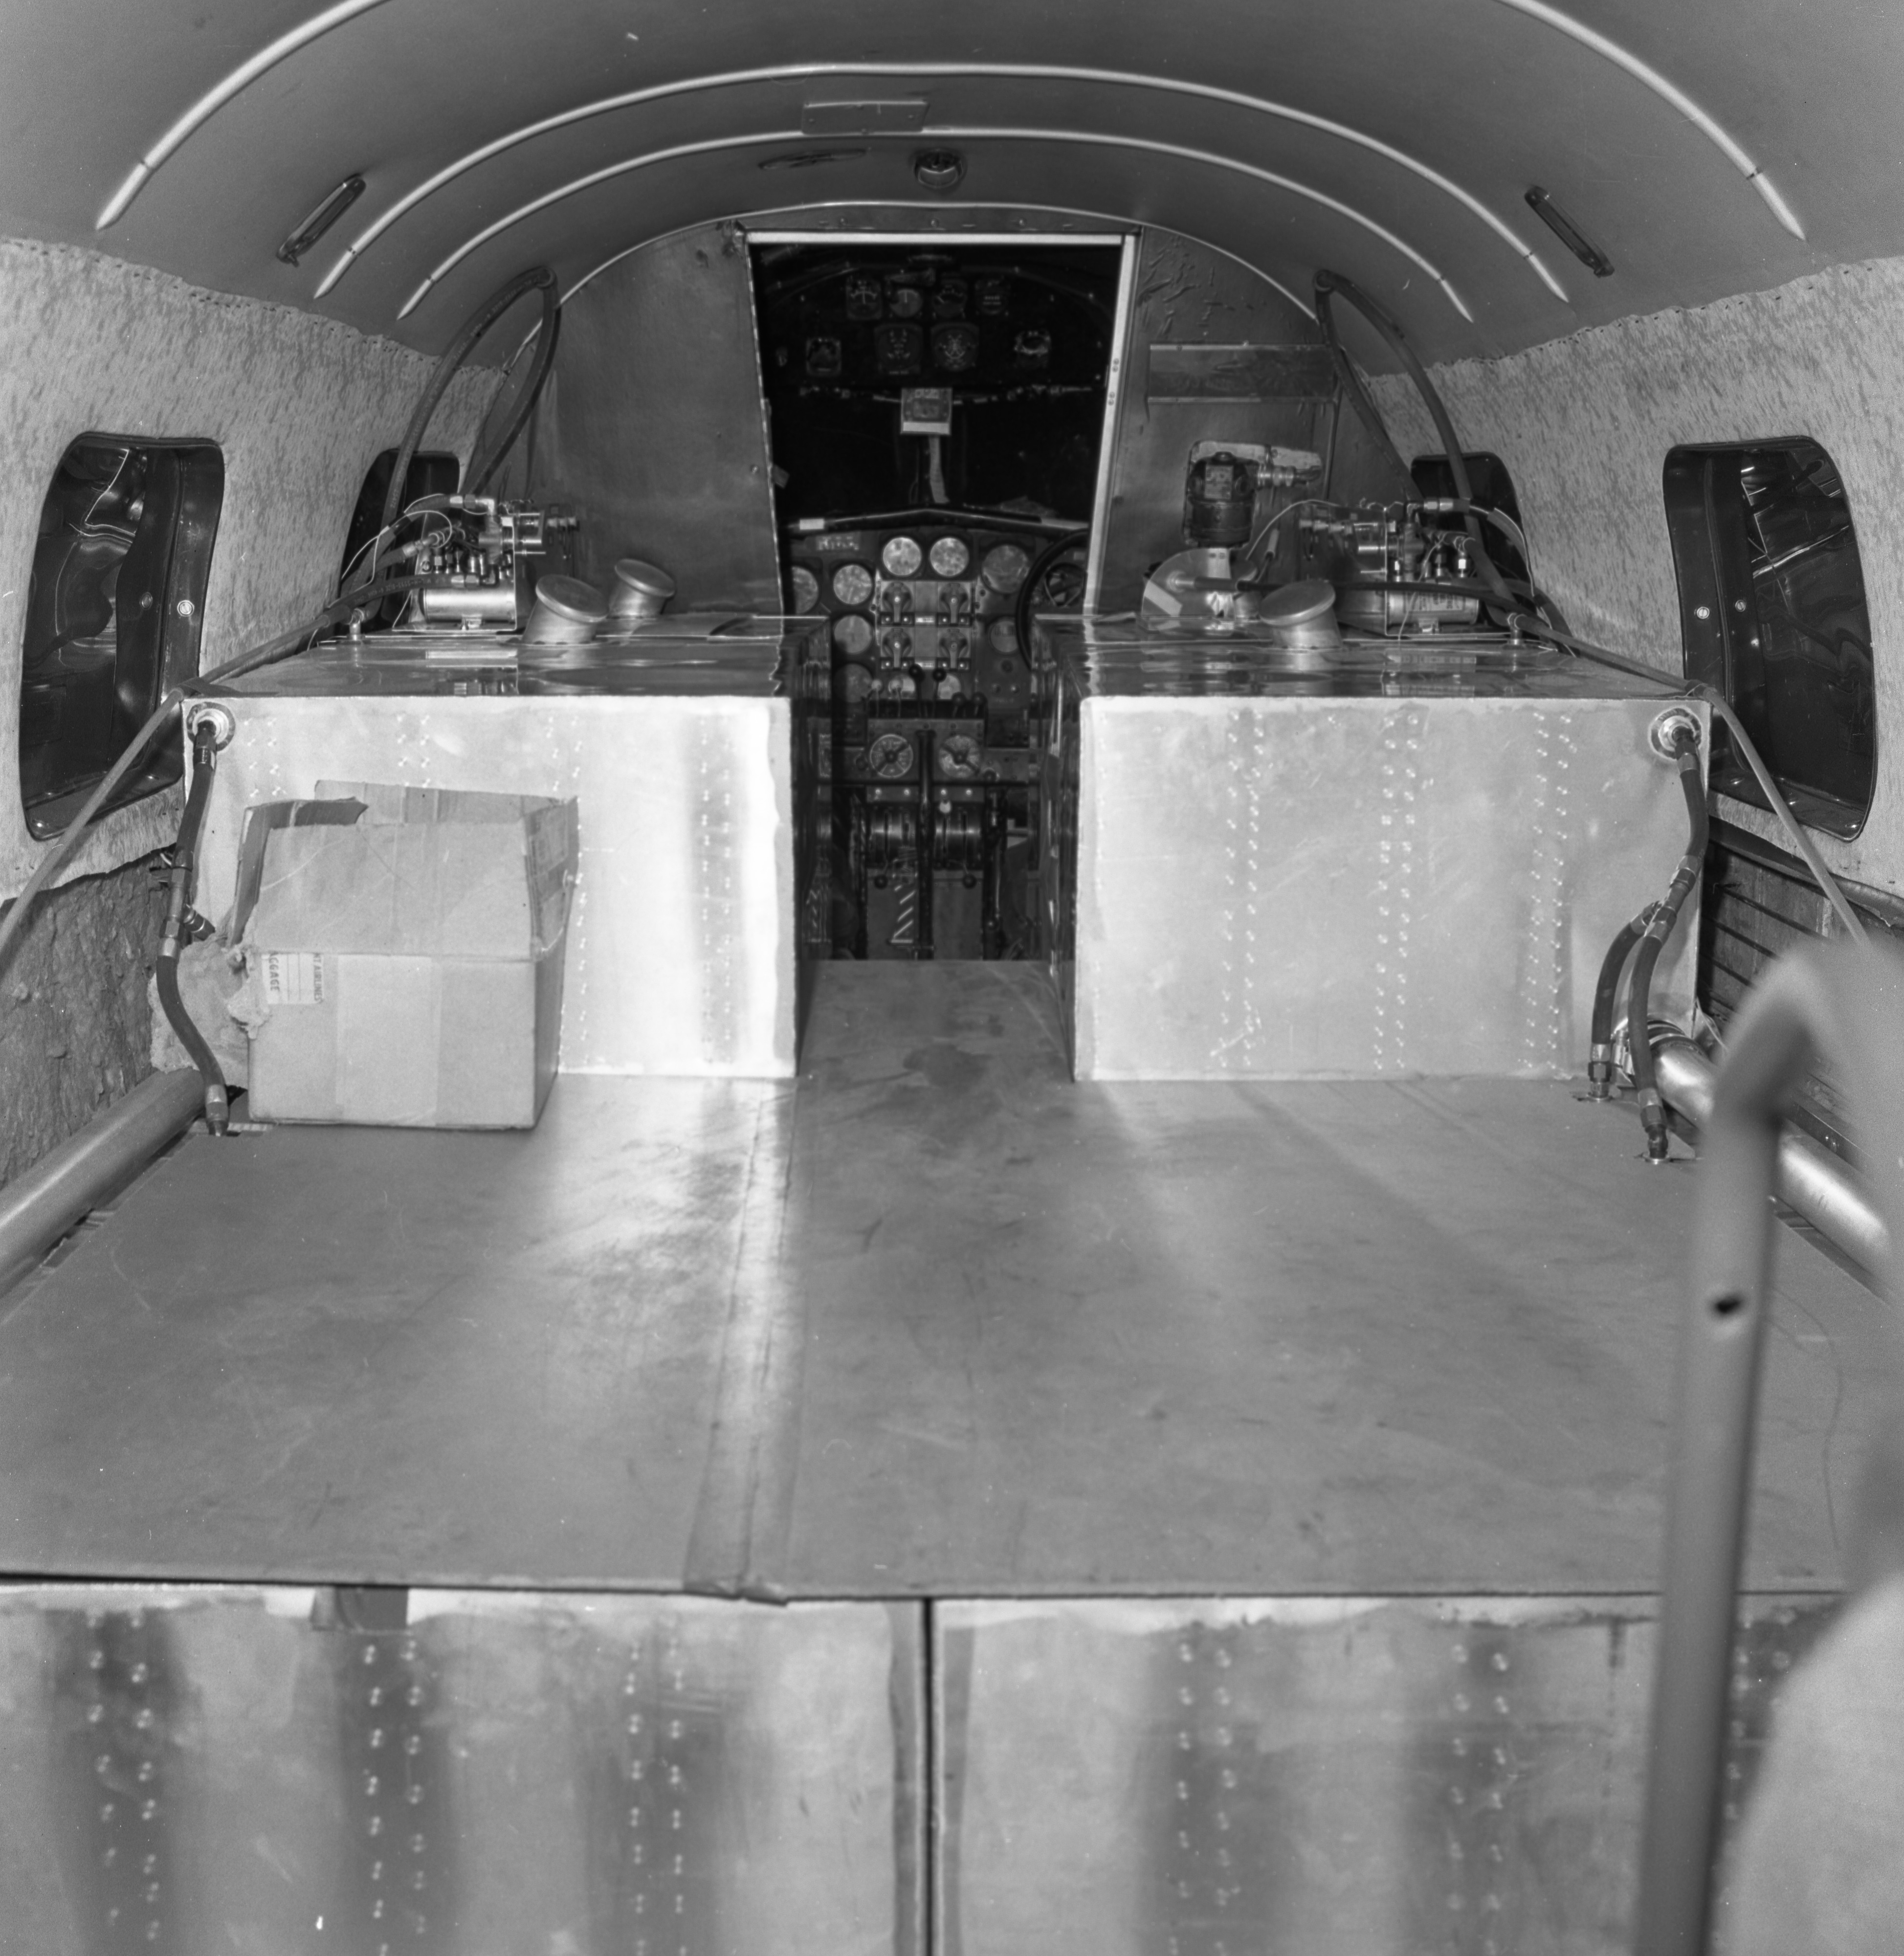 Interior of 1937-Vintage Plane for Amelia Earhart Commemorative Flight, May 1967 image